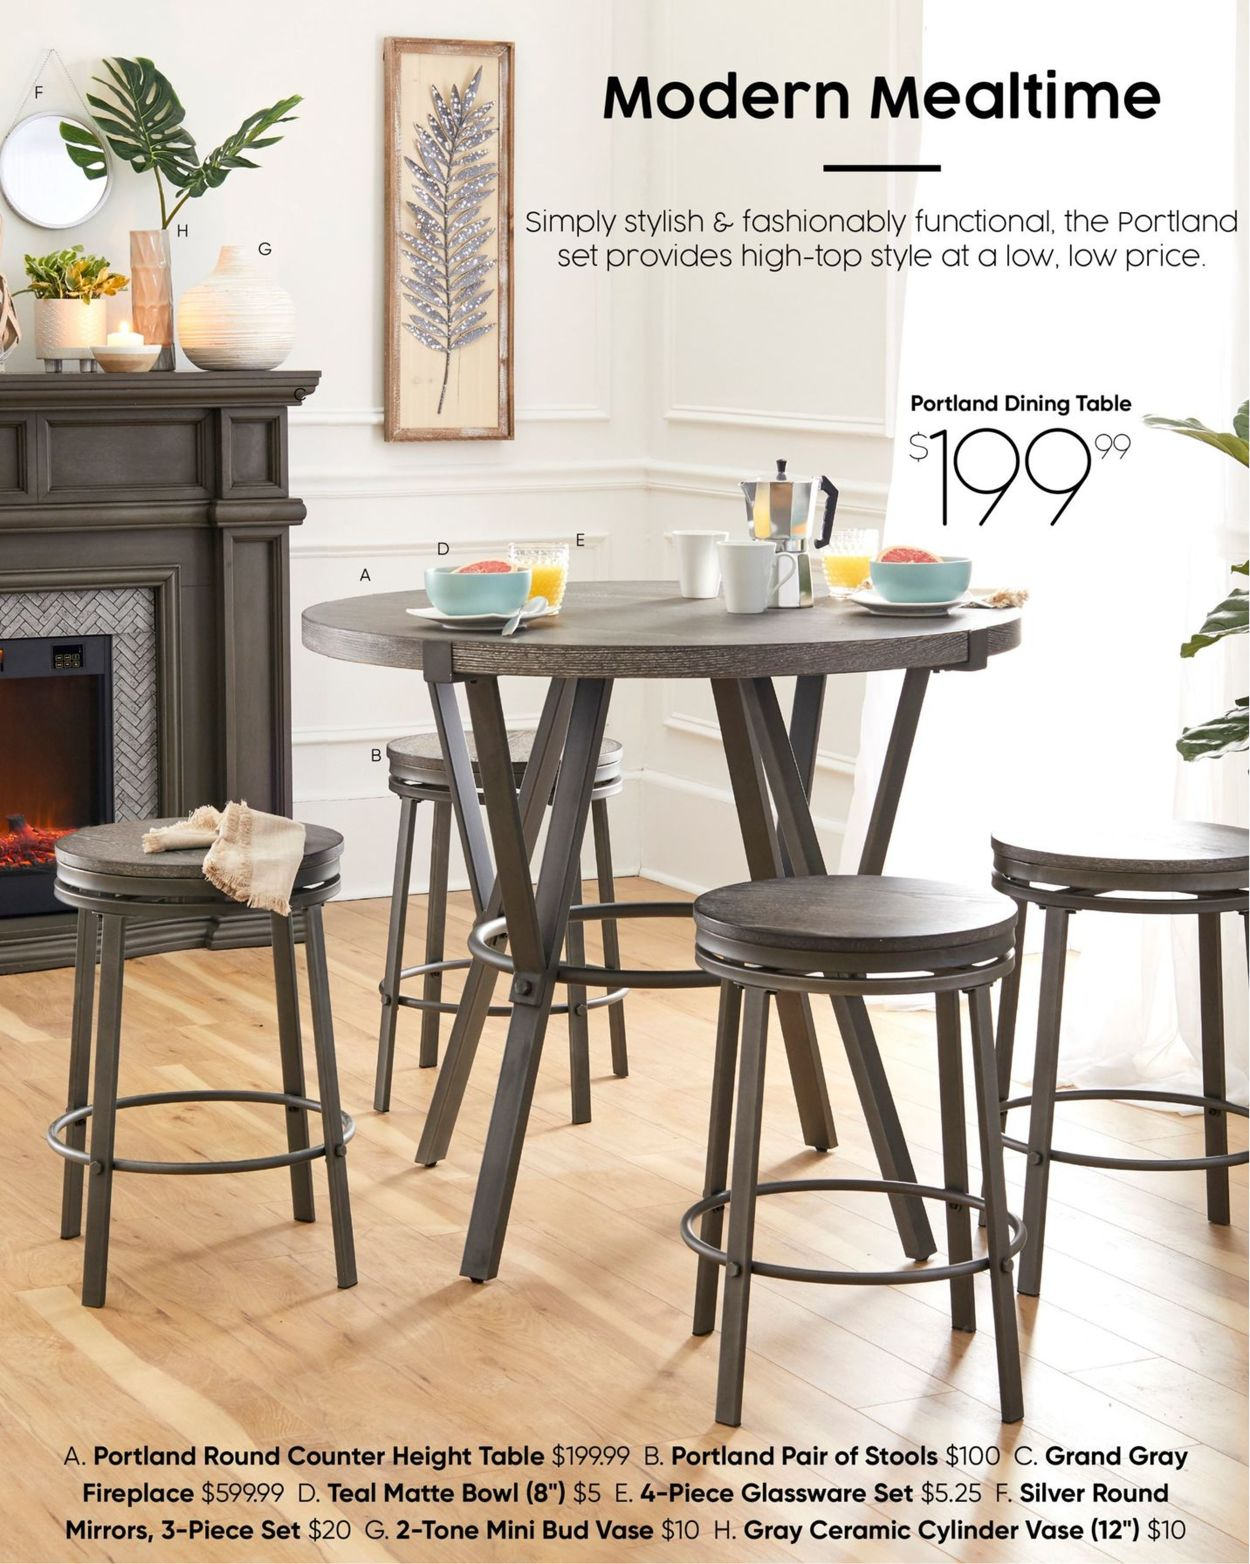 Big Lots Kitchen Tables : kitchen, tables, Current, Weekly, 06/10, 09/15/2019, Frequent-ads.com